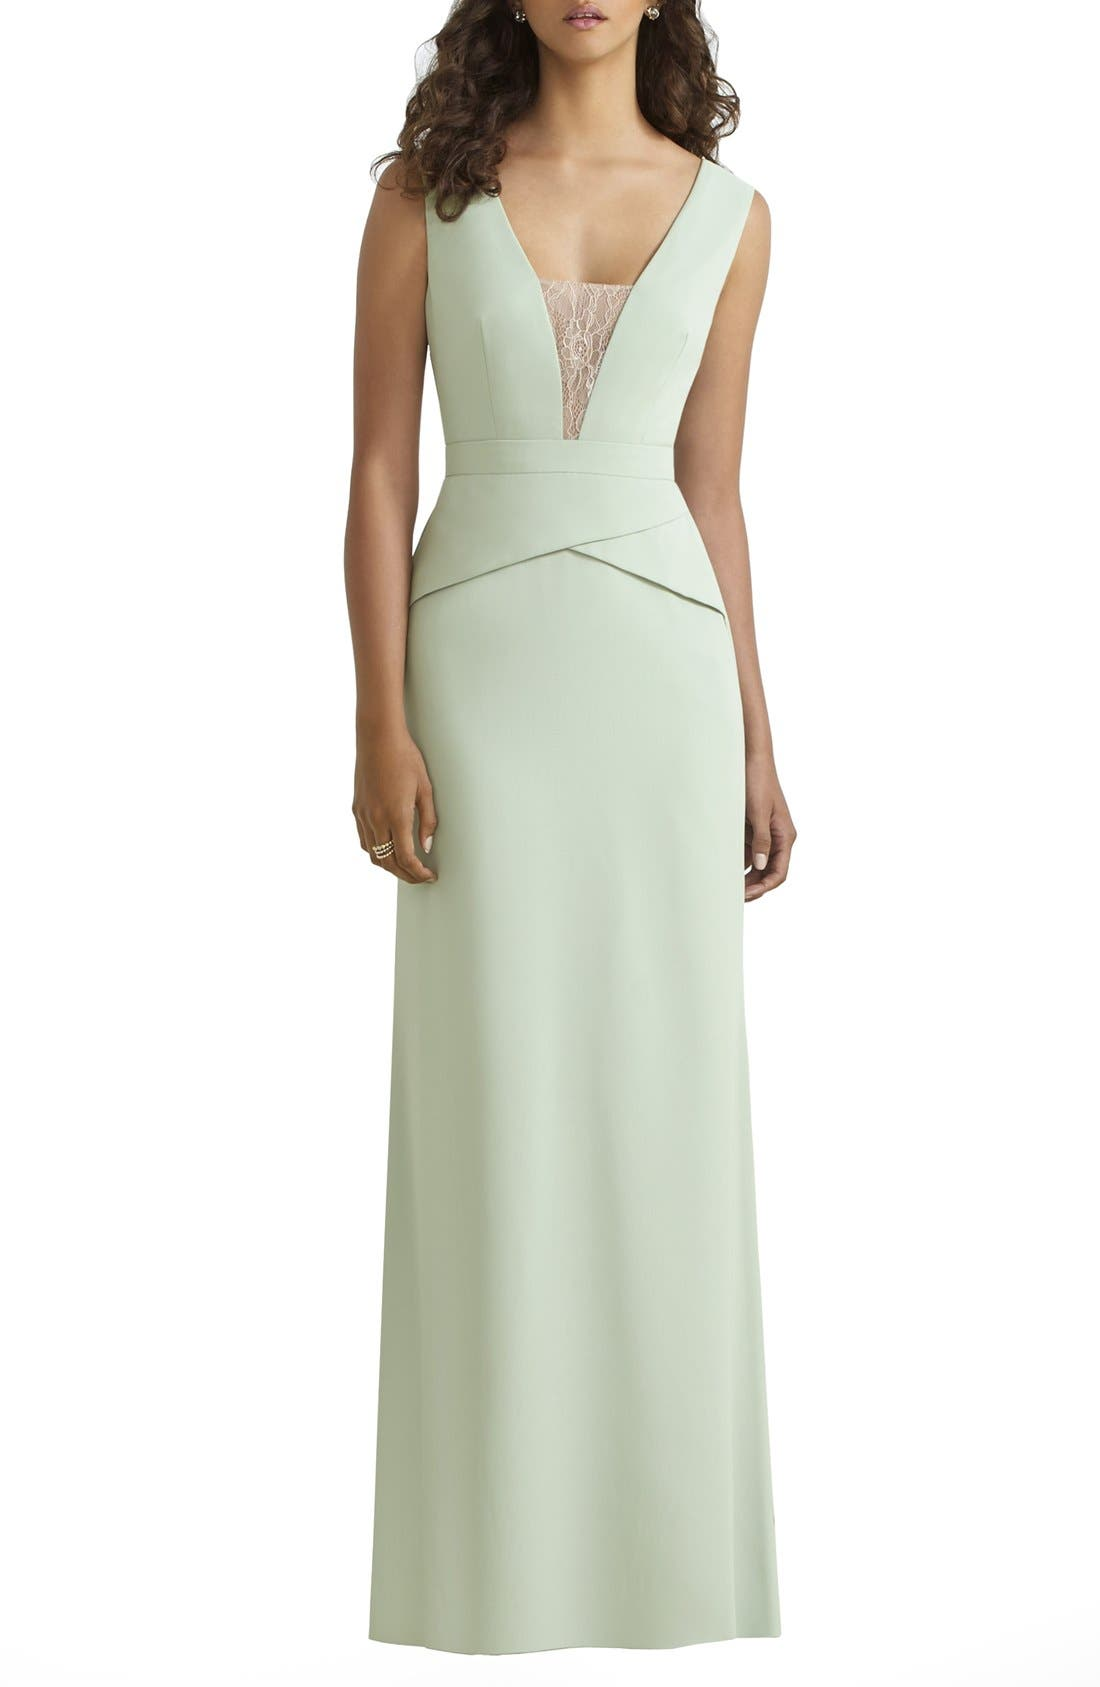 Alternate Image 1 Selected - Social Bridesmaids Lace Inset V-Neck Peplum Detail Gown